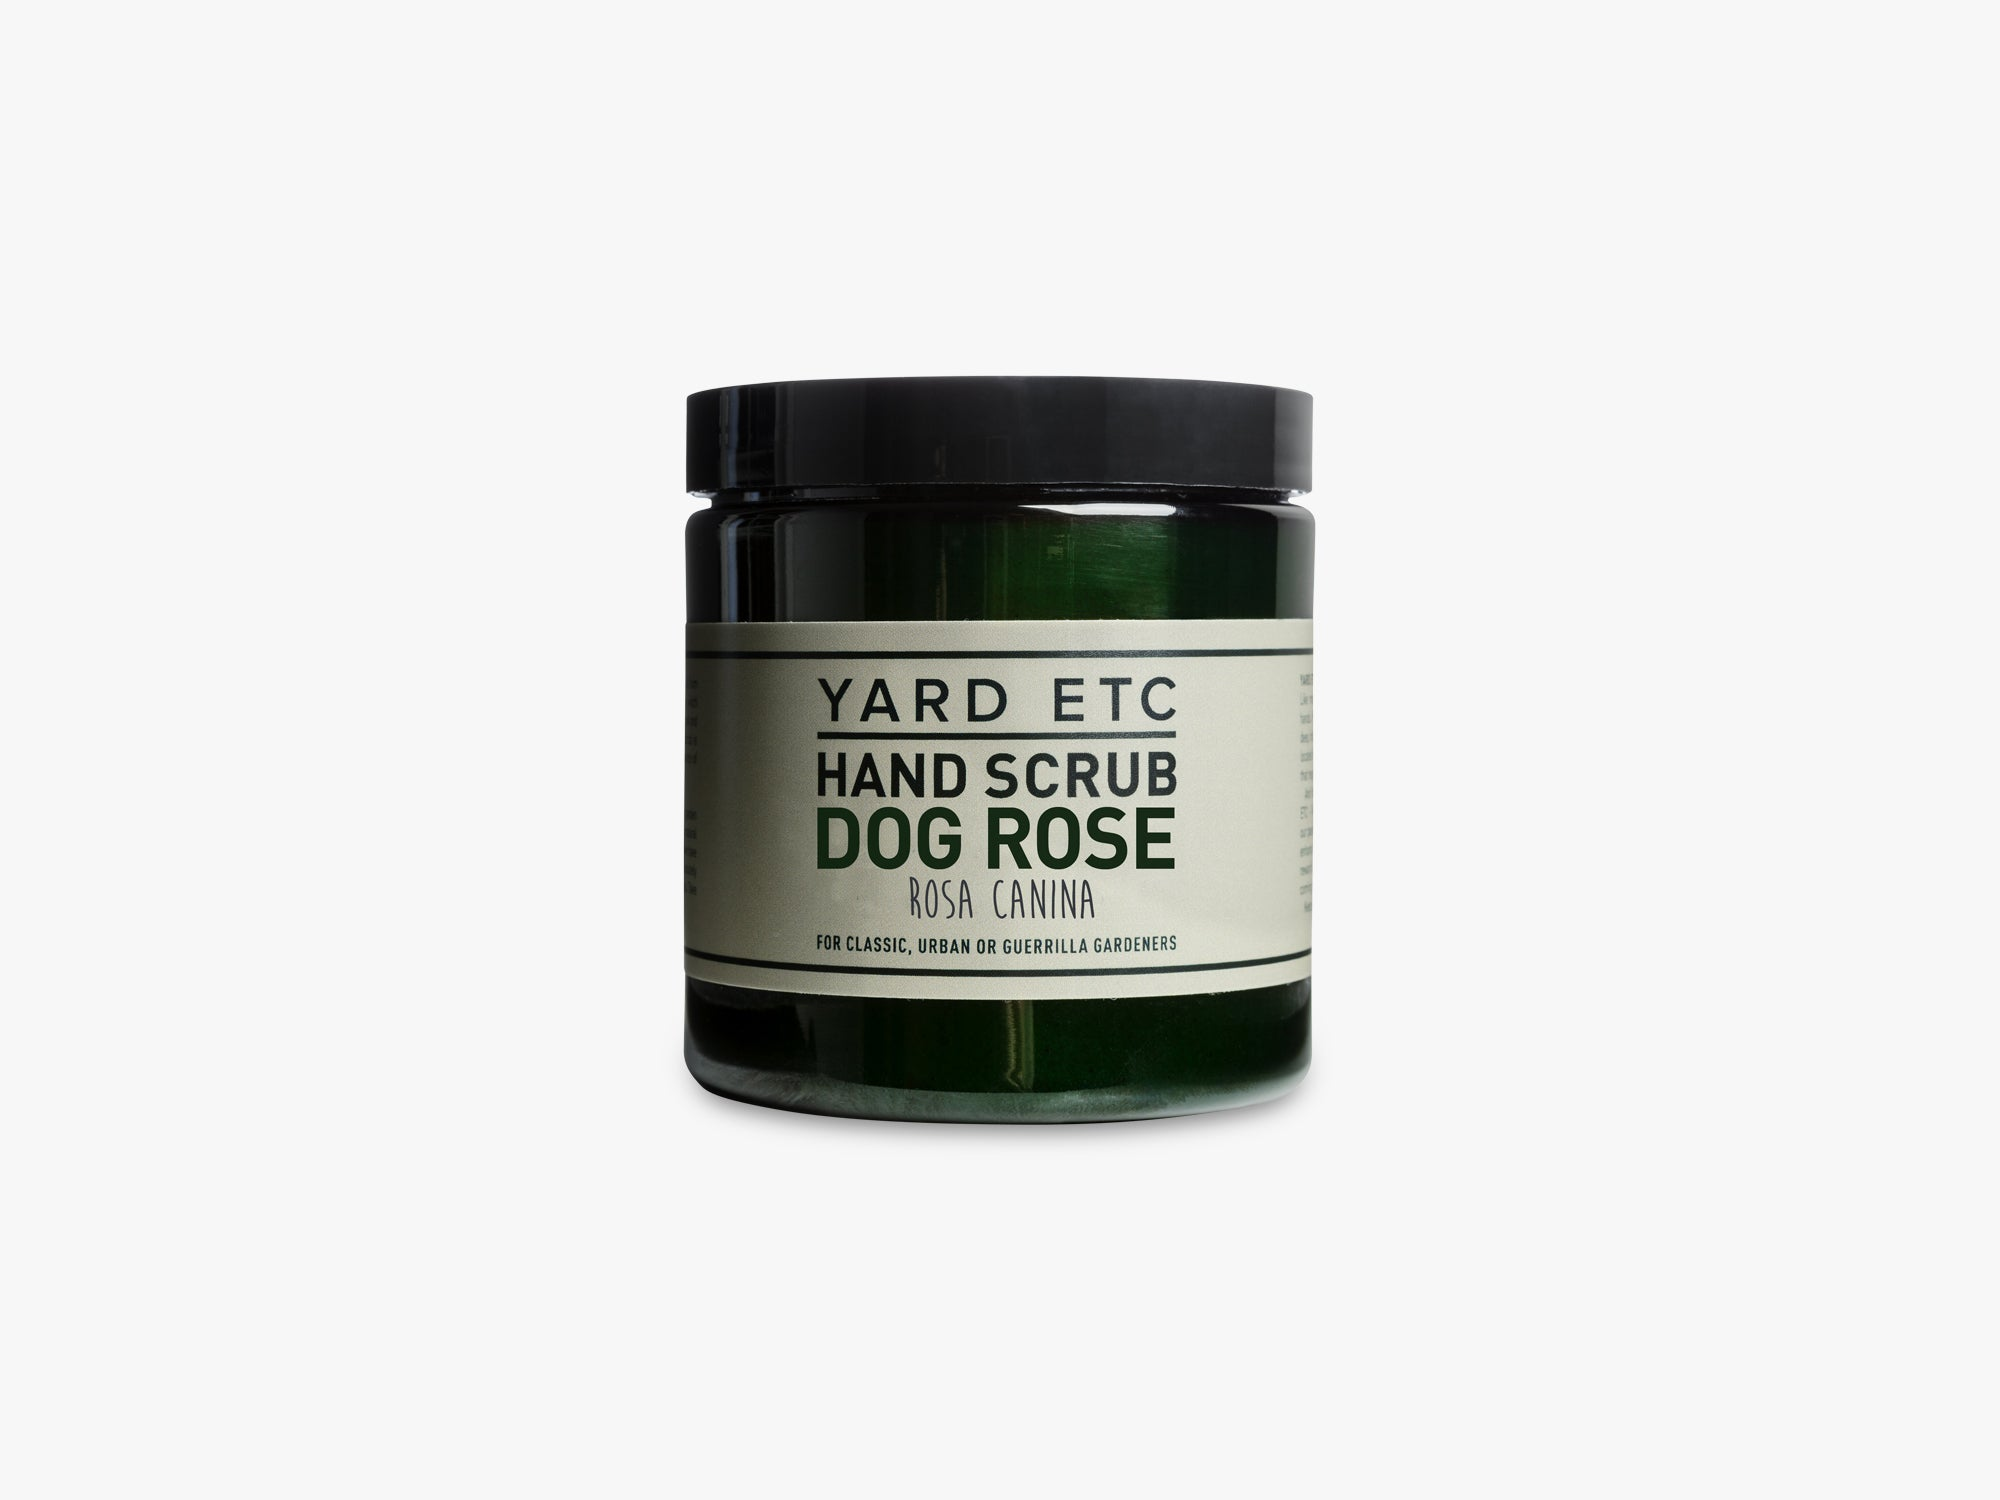 Hand Scrub - 250ml, Dog Rose fra Yard Etc